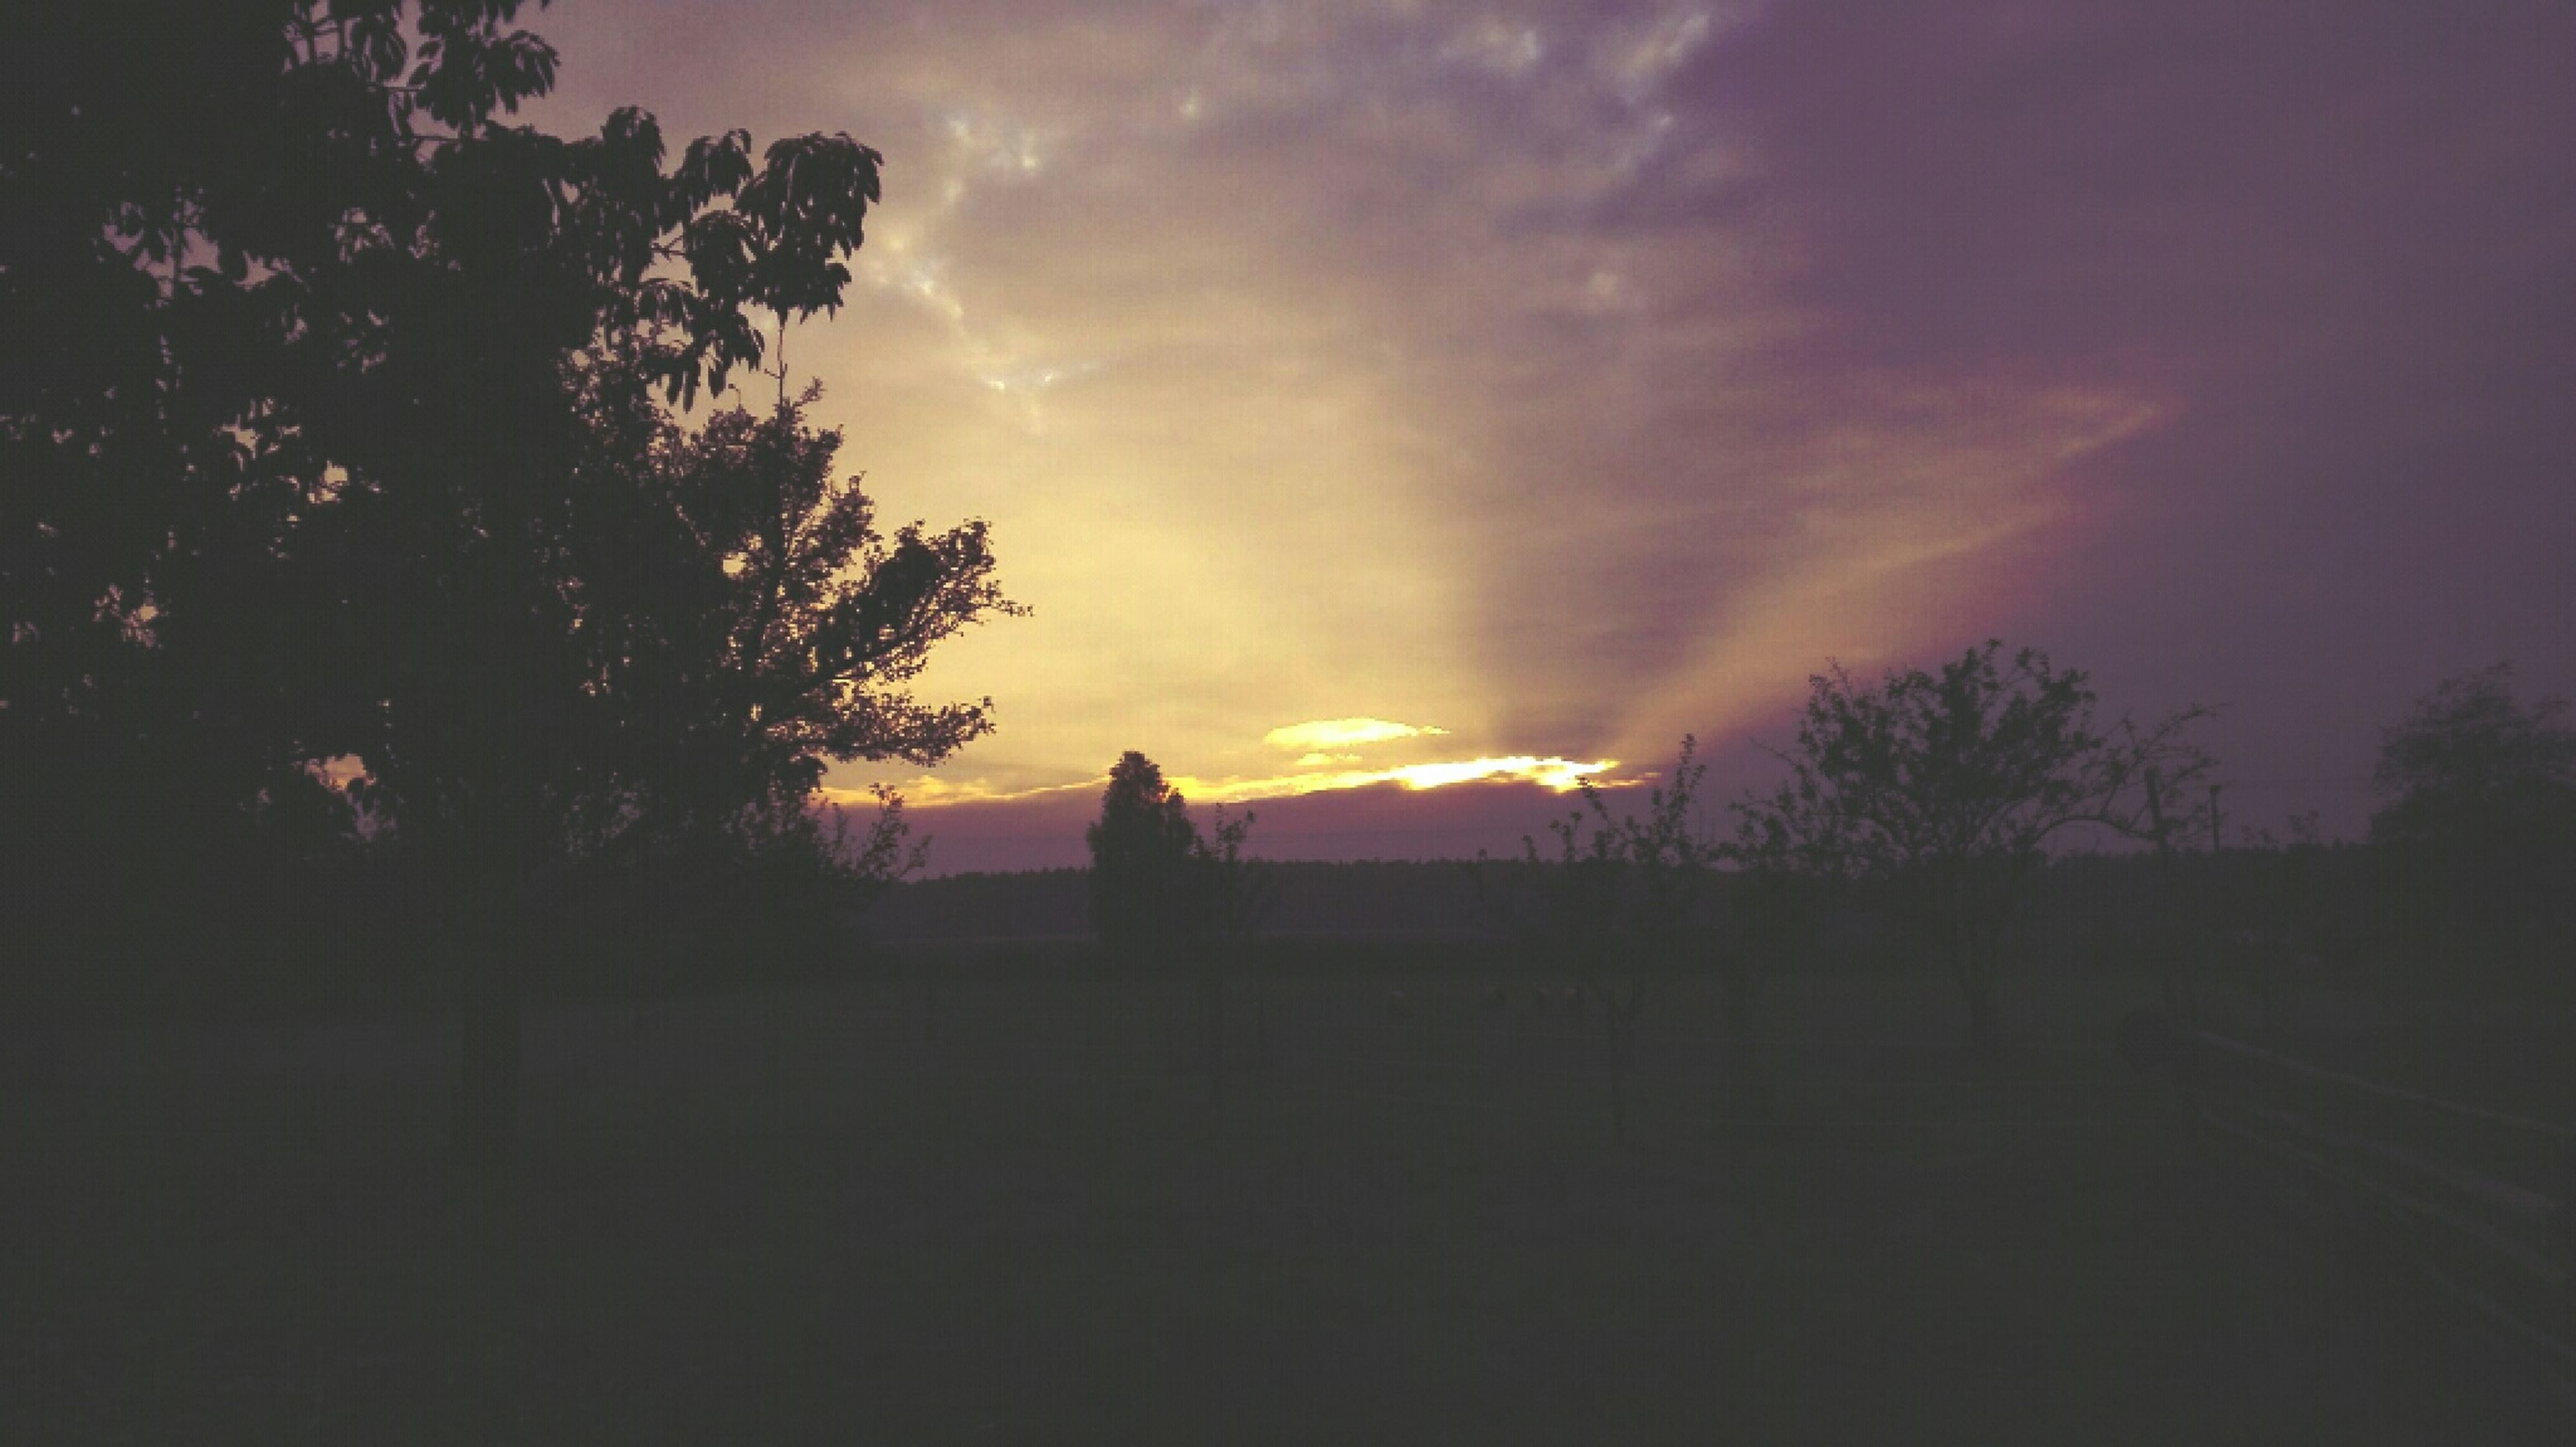 silhouette, sunset, sky, tree, tranquility, tranquil scene, cloud - sky, scenics, beauty in nature, landscape, nature, dark, dusk, cloudy, cloud, idyllic, dramatic sky, field, outline, outdoors